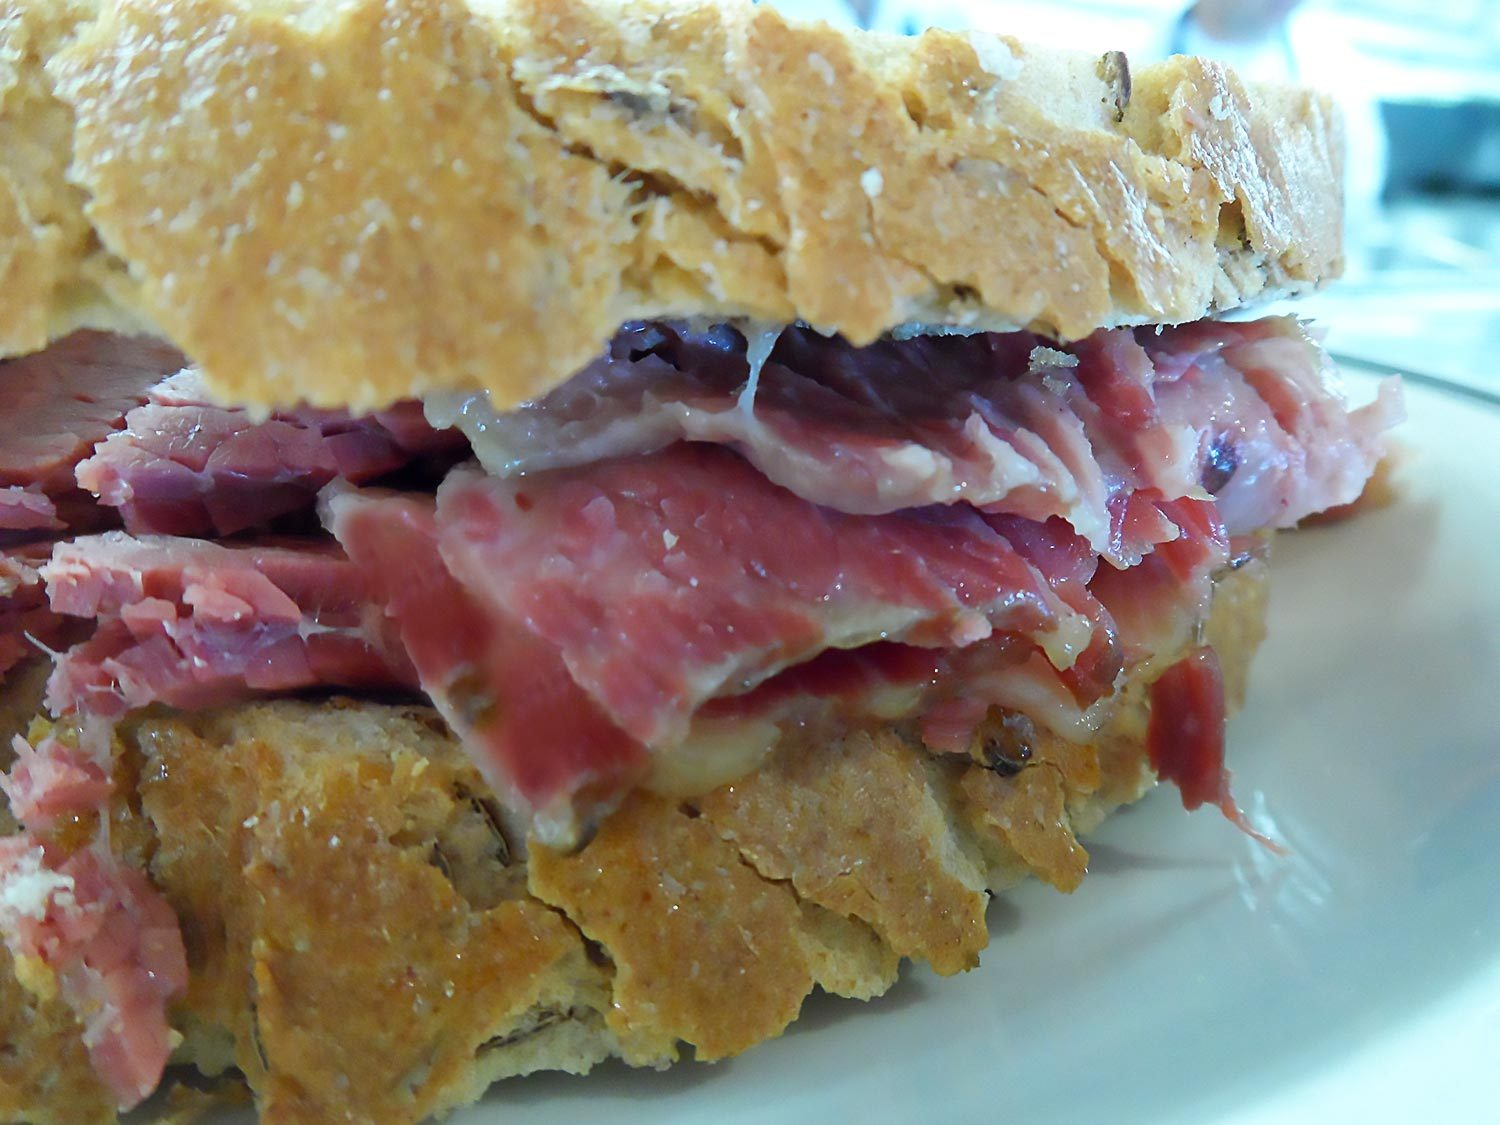 A hot corned beef on rye at Langer's Deli